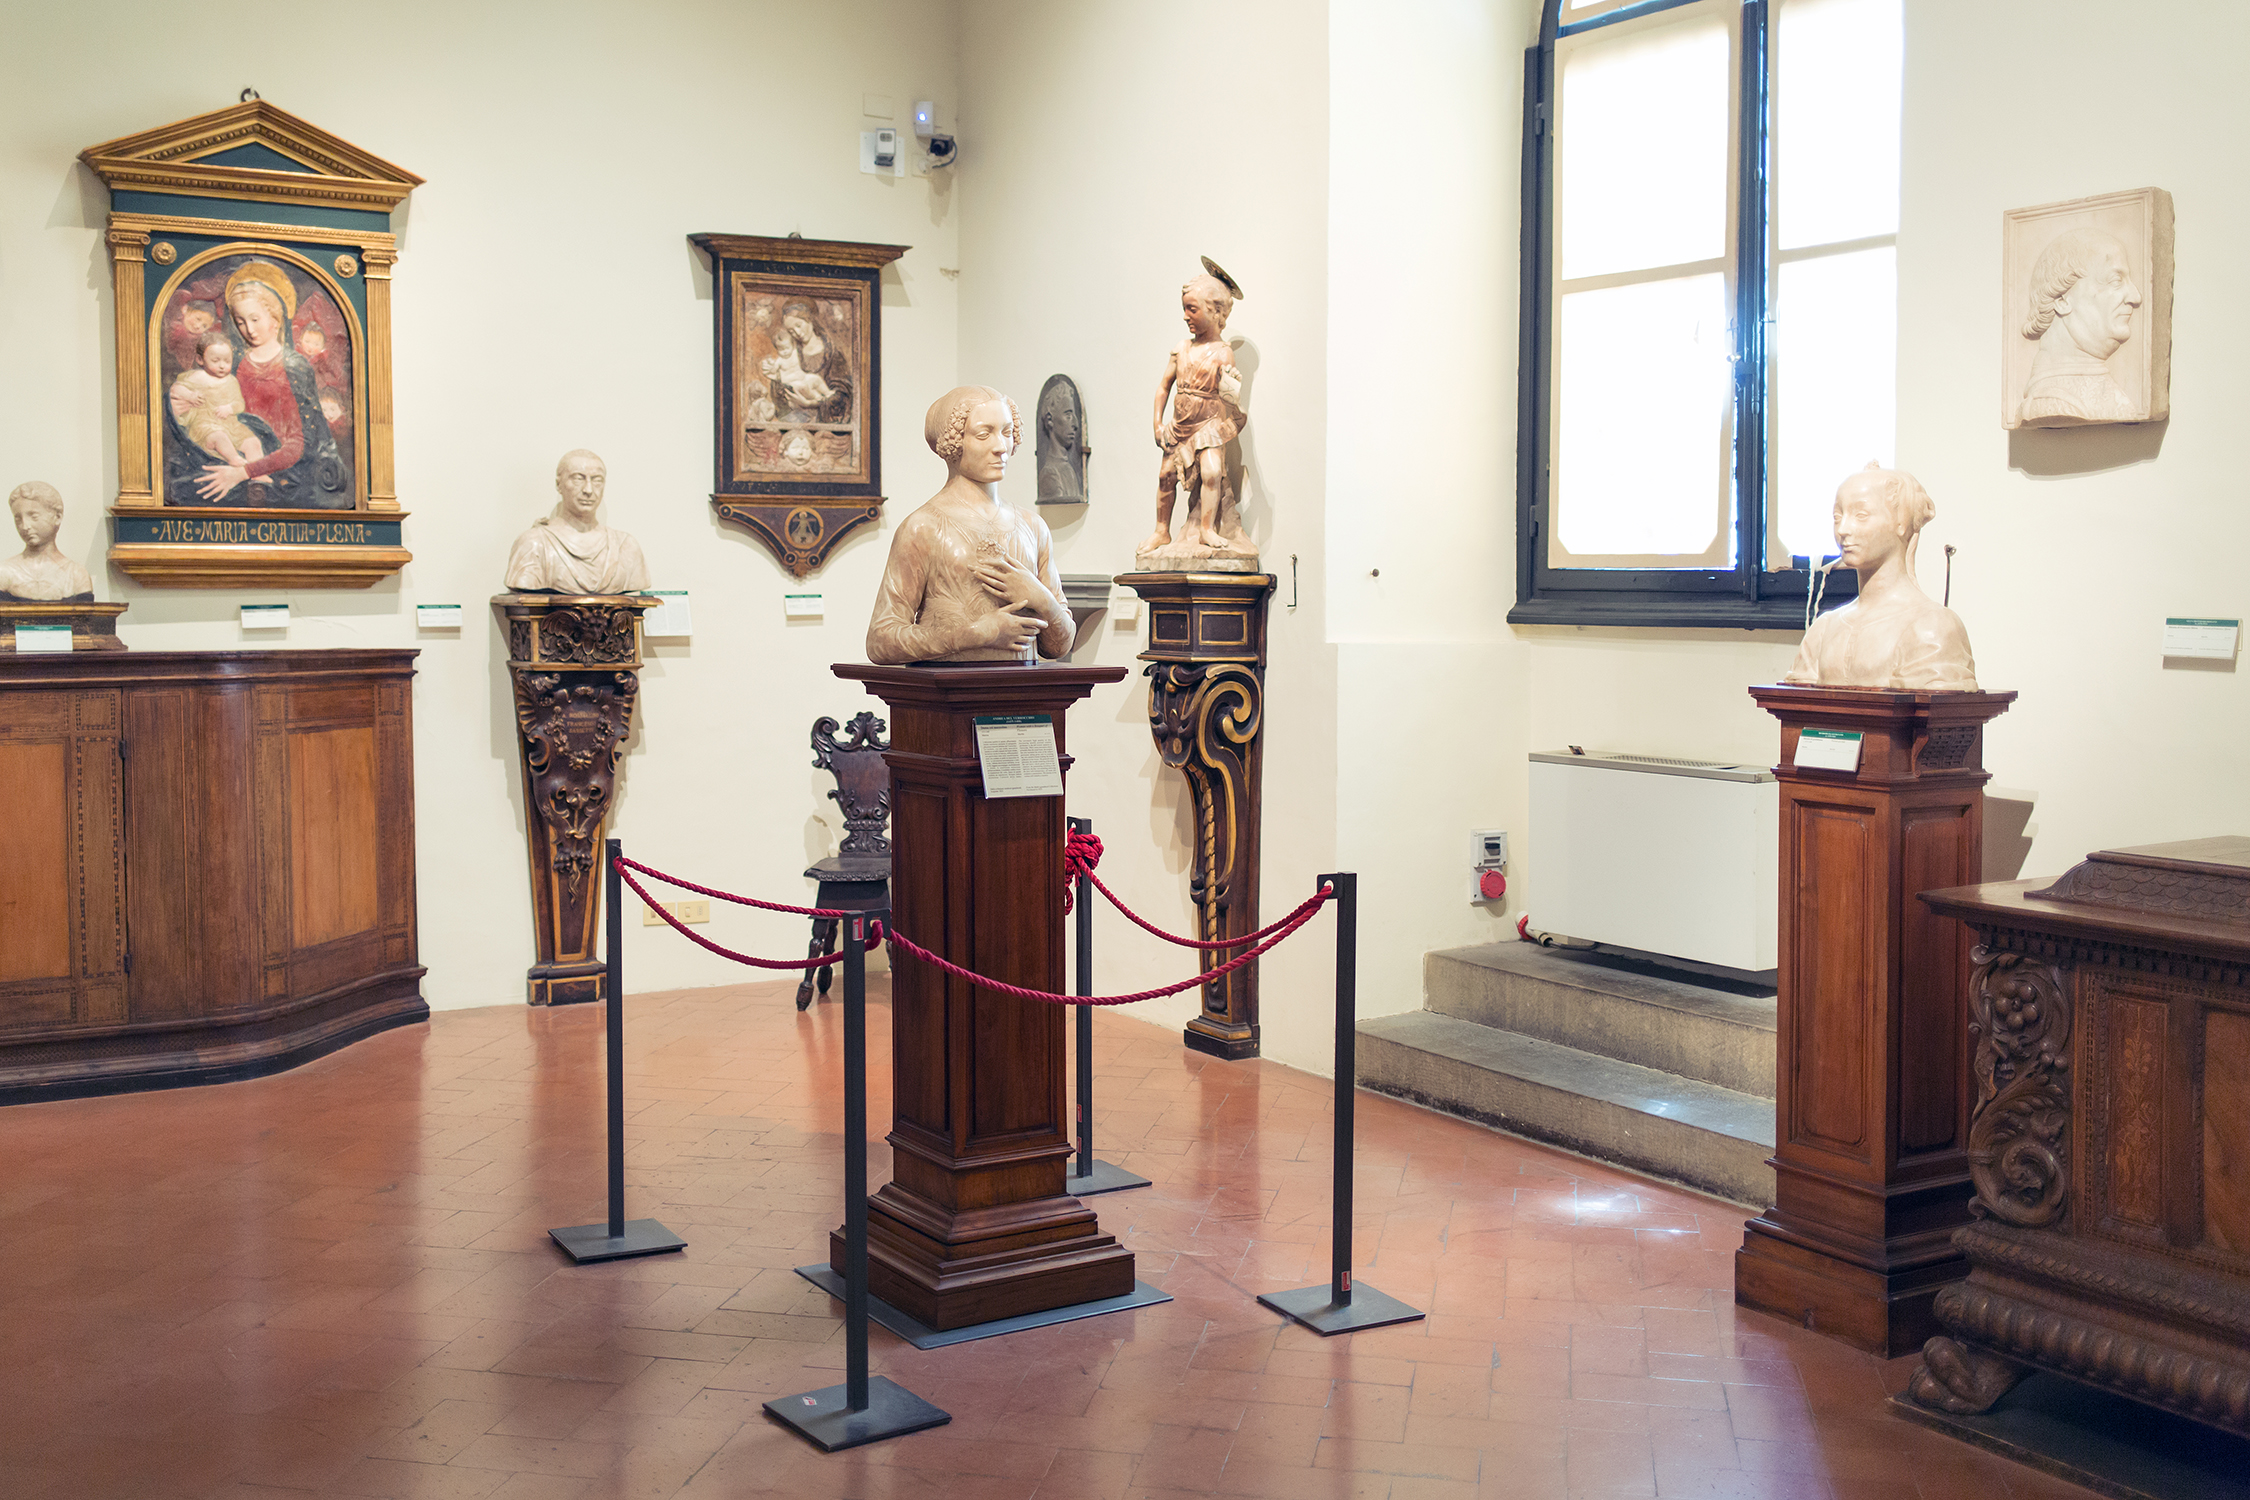 Salone del Verrocchio and sculptures of the second half of the fifteenth century, Bargello National Museum, Florence.